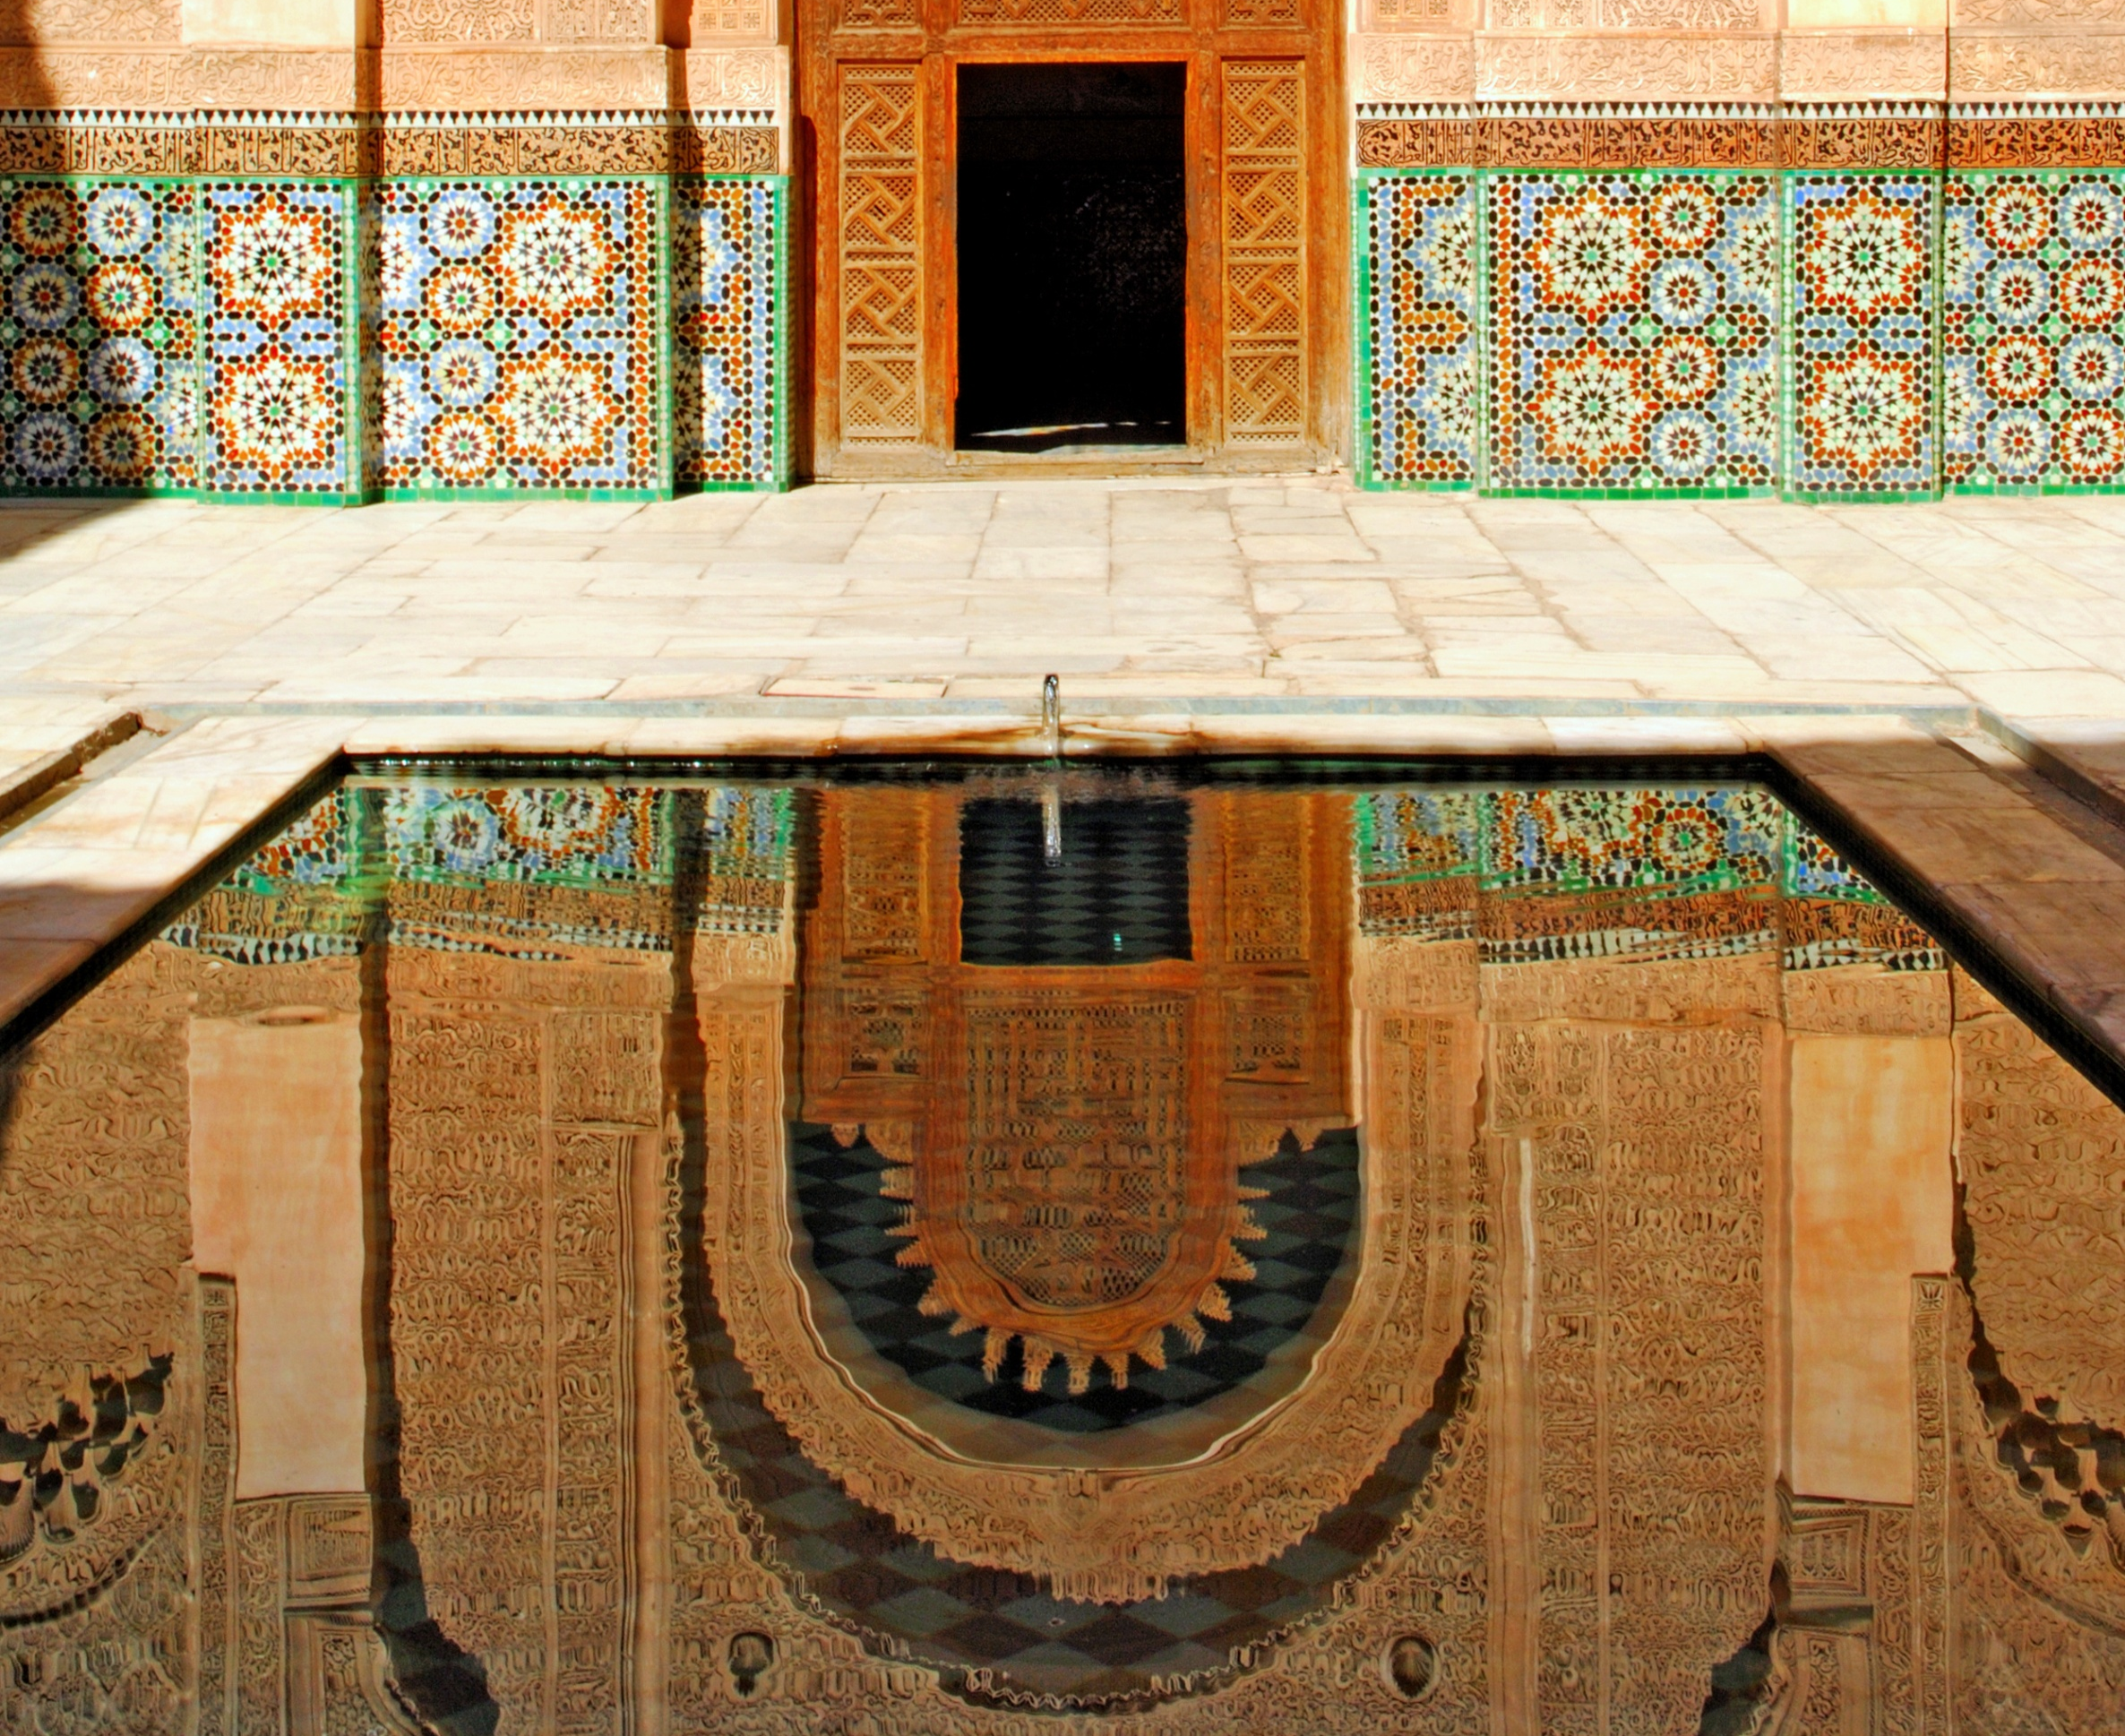 Between mosaics and stucco: The Ben Youssef Madrasa